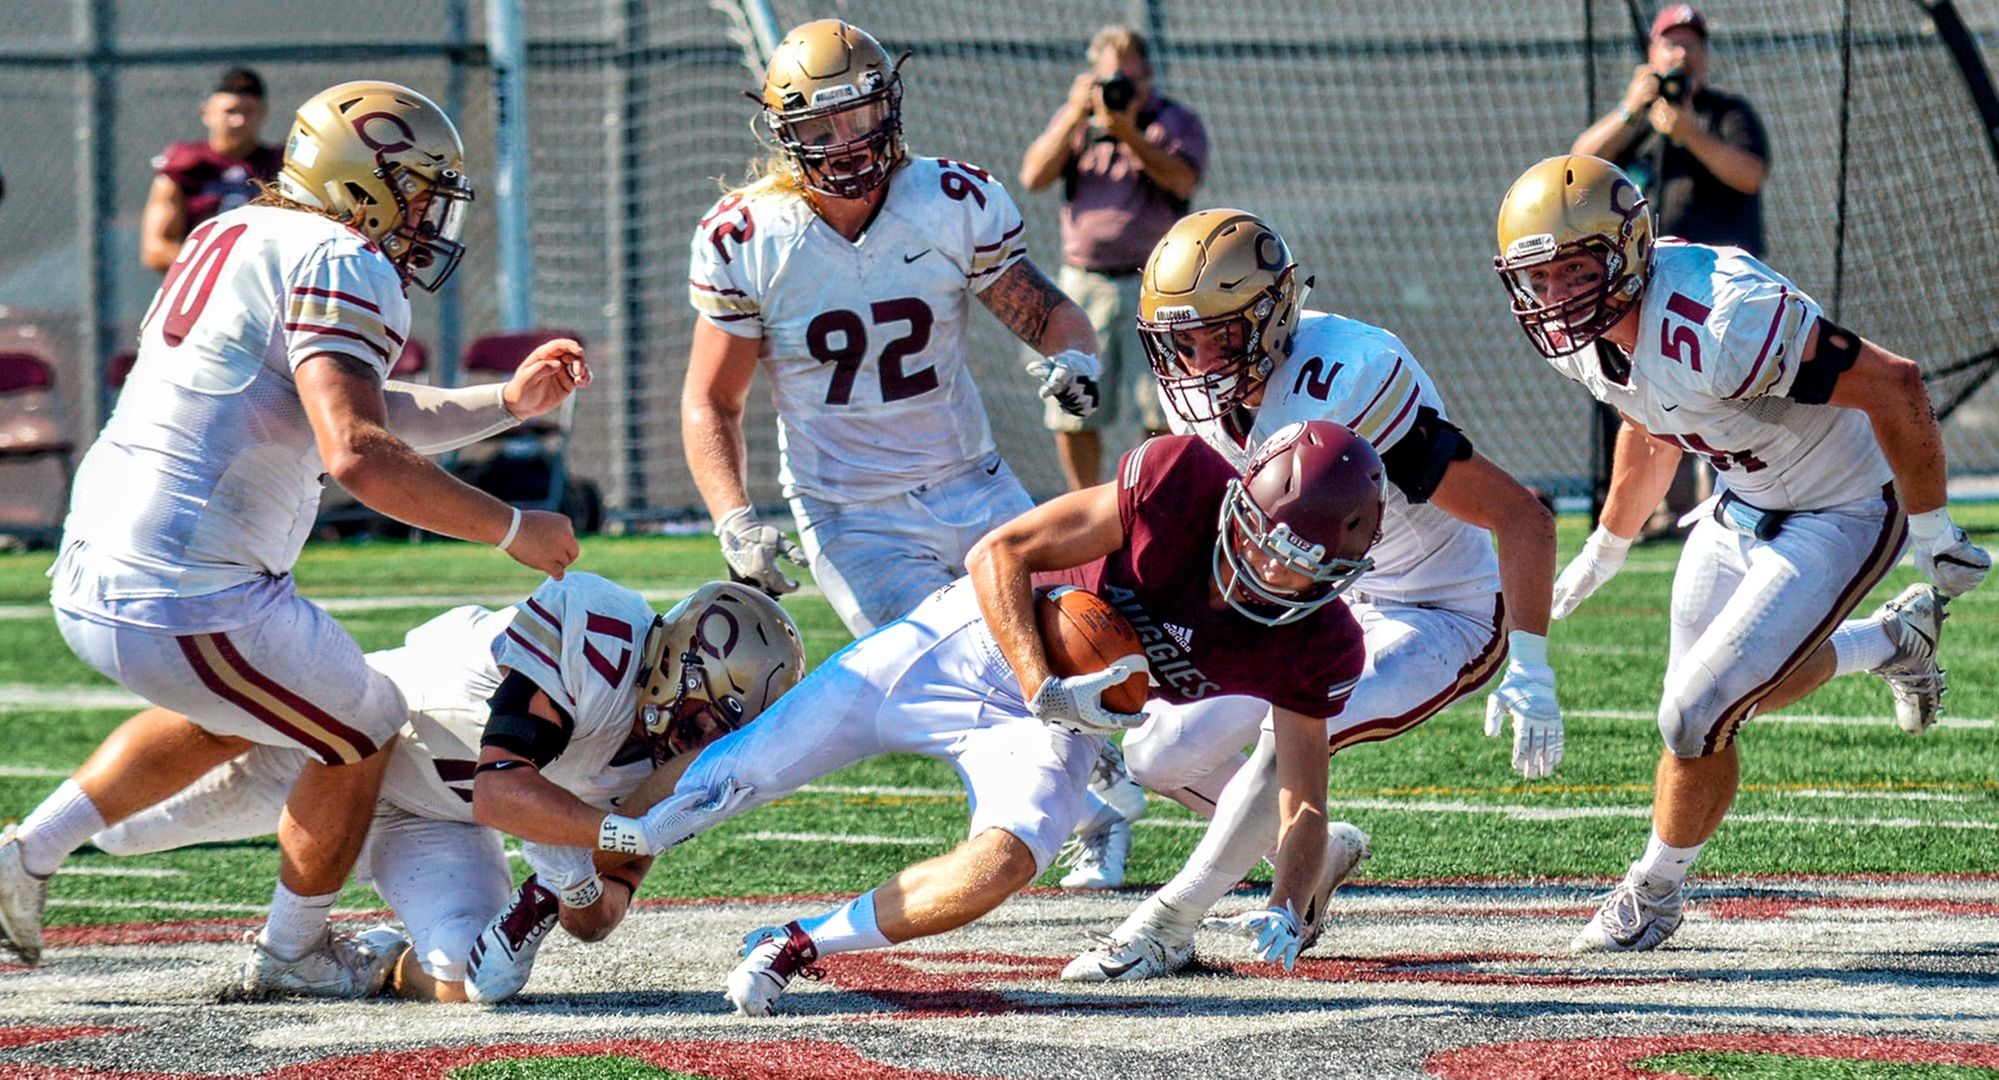 The Cobber defense swarms the Augsburg ball carrier during Concordia's 54-7 win. (Photo courtesy of BJ Pickard - MIAC Office)